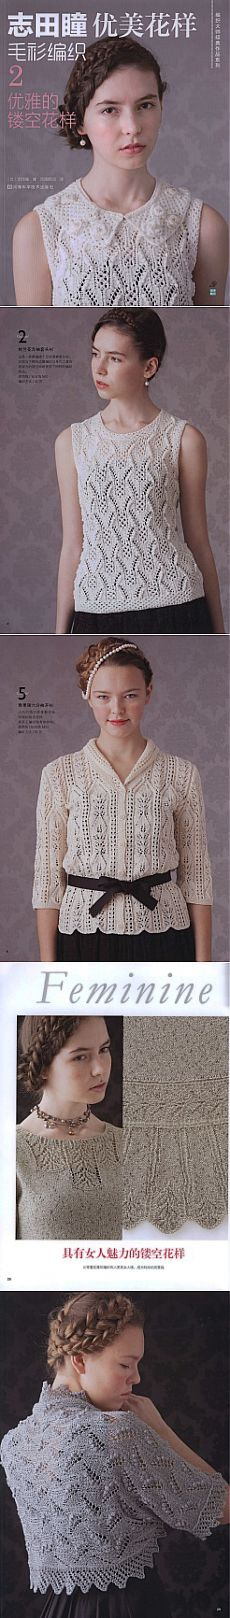 Houte Couture Elegant Knit Wear Vol 2 2014.